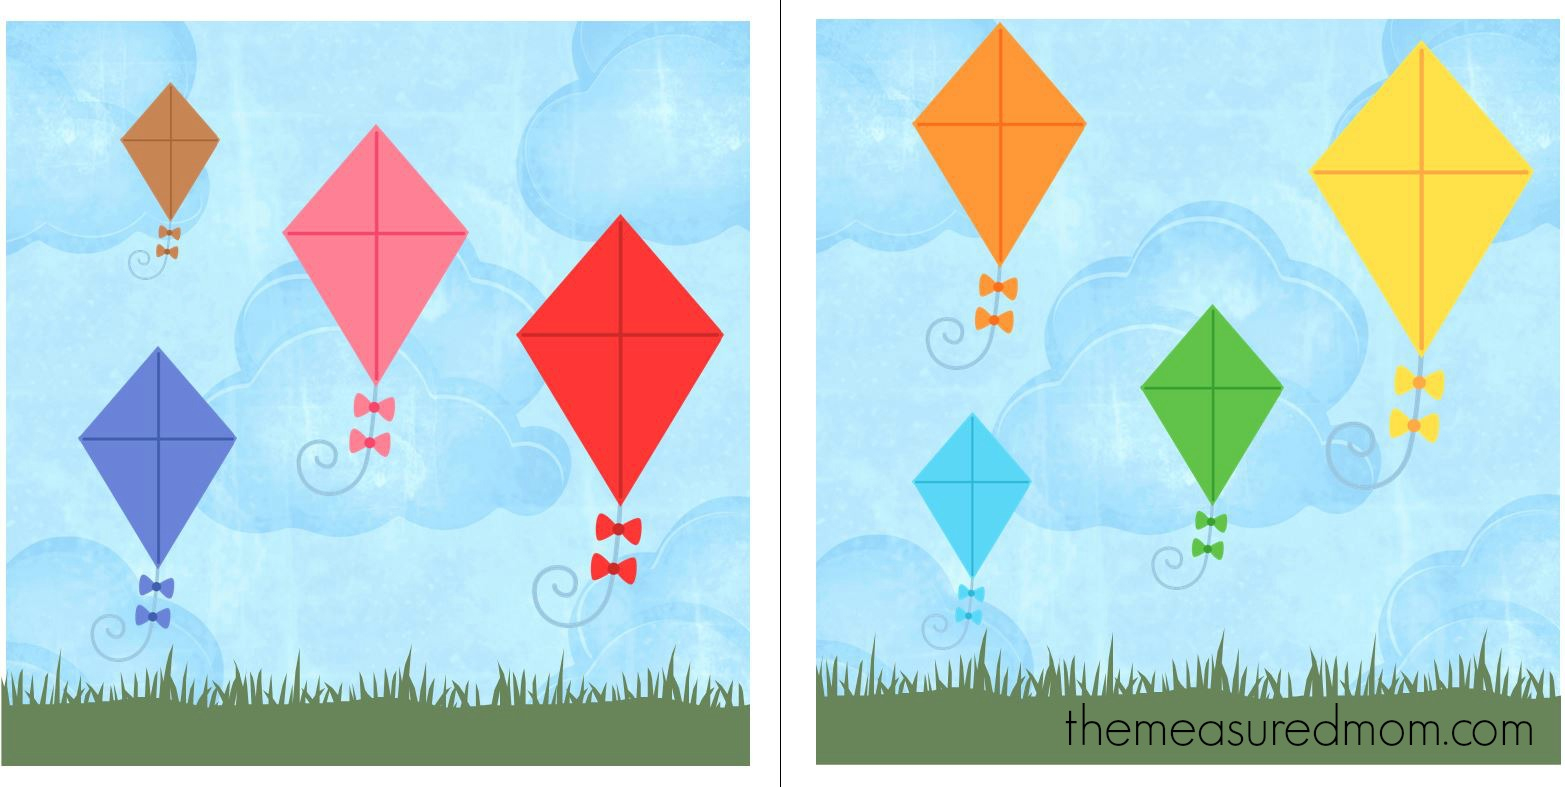 Free File Folder Game For Preschoolers: Kites! - The Measured Mom - Free Printable Folder Games